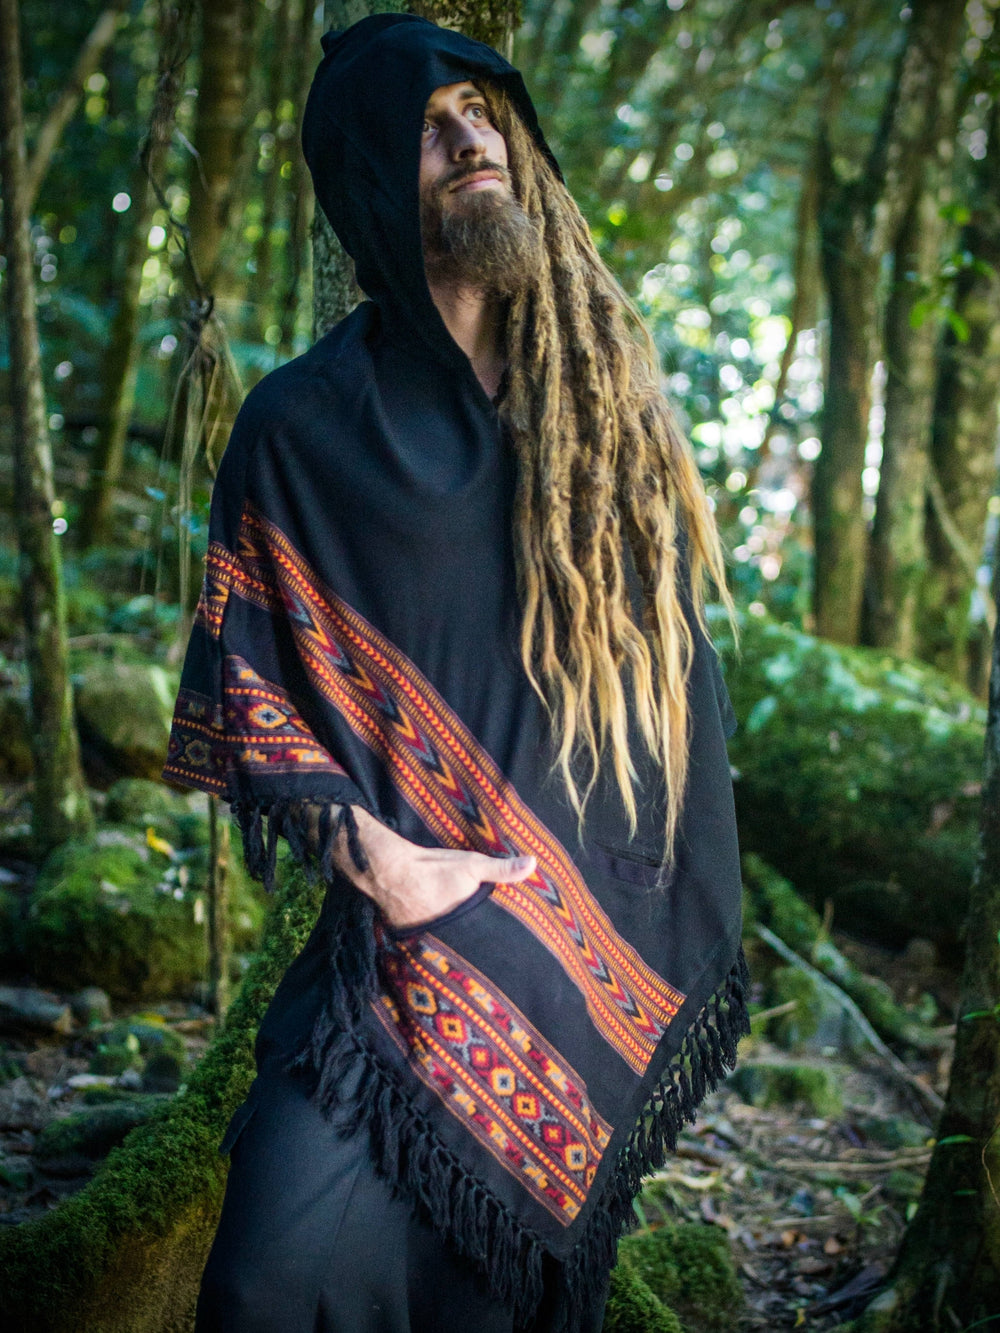 Black Poncho Yak Wool Handmade with Large Hood and pockets, Earthy Tribal Pattern Festival Gypsy AJJAYA Mens Mexican Primitive Alternative